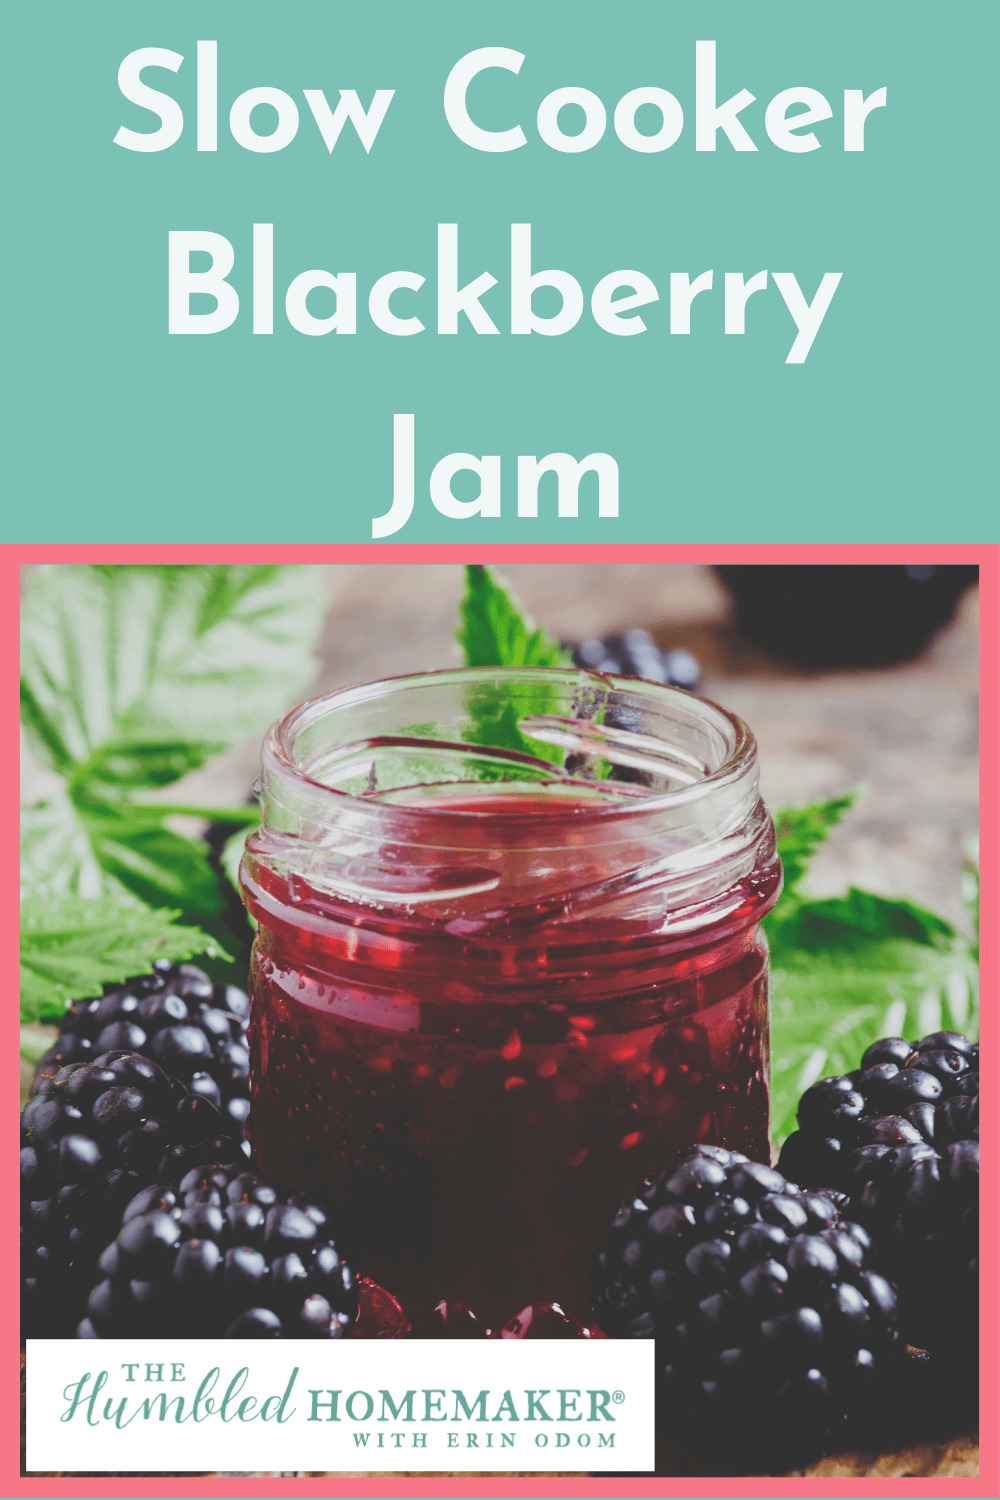 Here is a recipe for making simple, delicious blackberry jam in the crock pot or slow cooker. Use fresh blackberries or any in-season berry for this recipe.